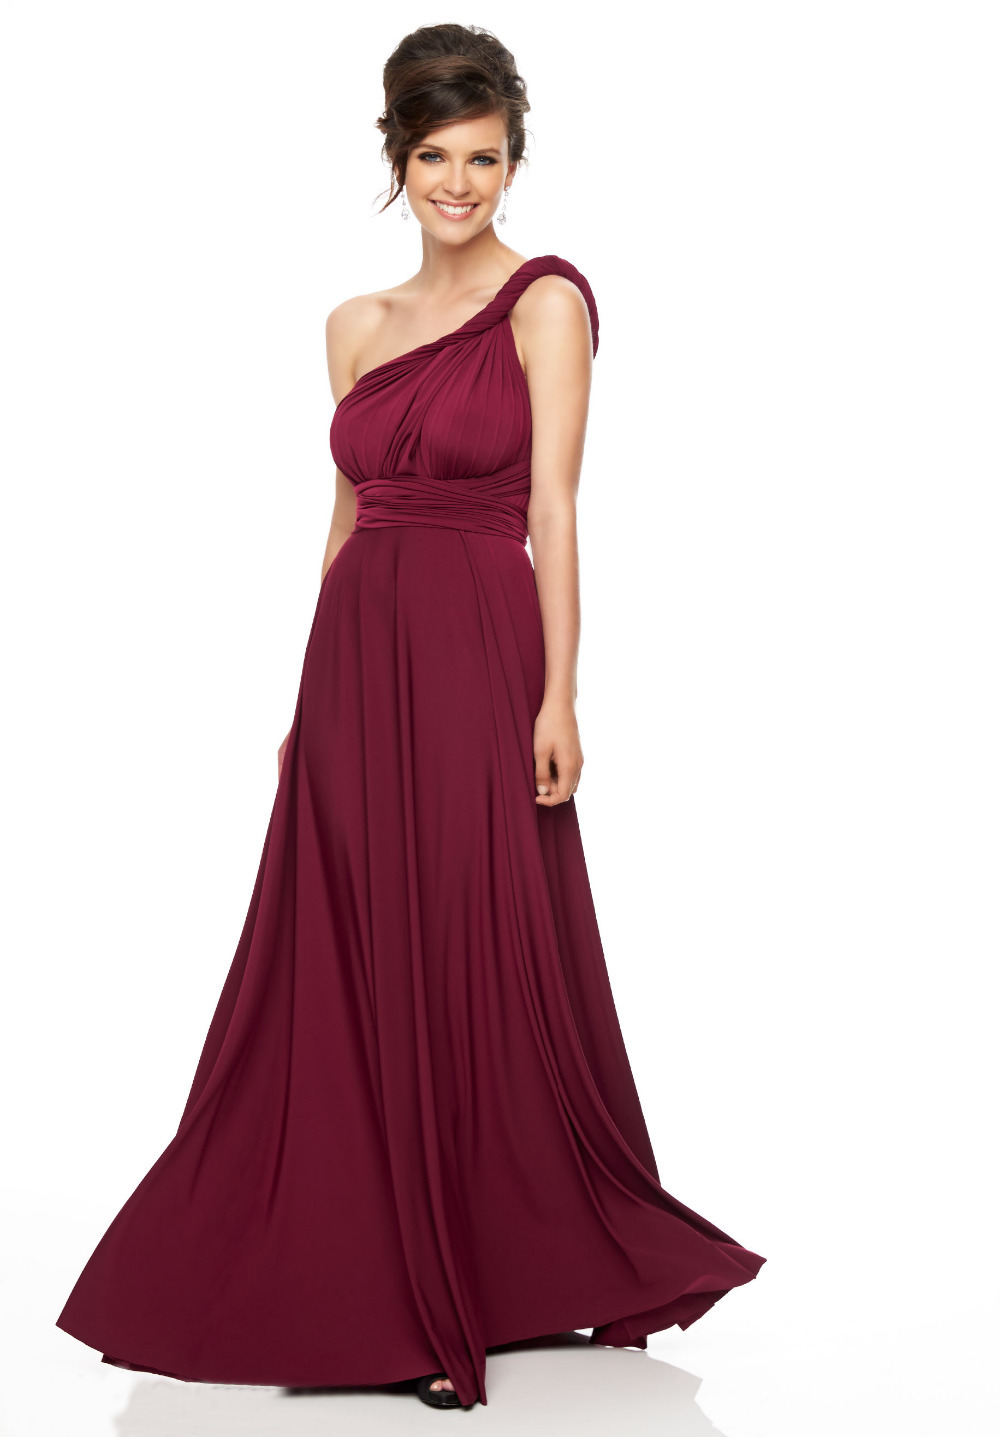 9664245ec9e2 Get Quotations · Red wine long chiffon bridesmaid dresses 2015 sexy one  shoulder cheap plus size wedding party dress